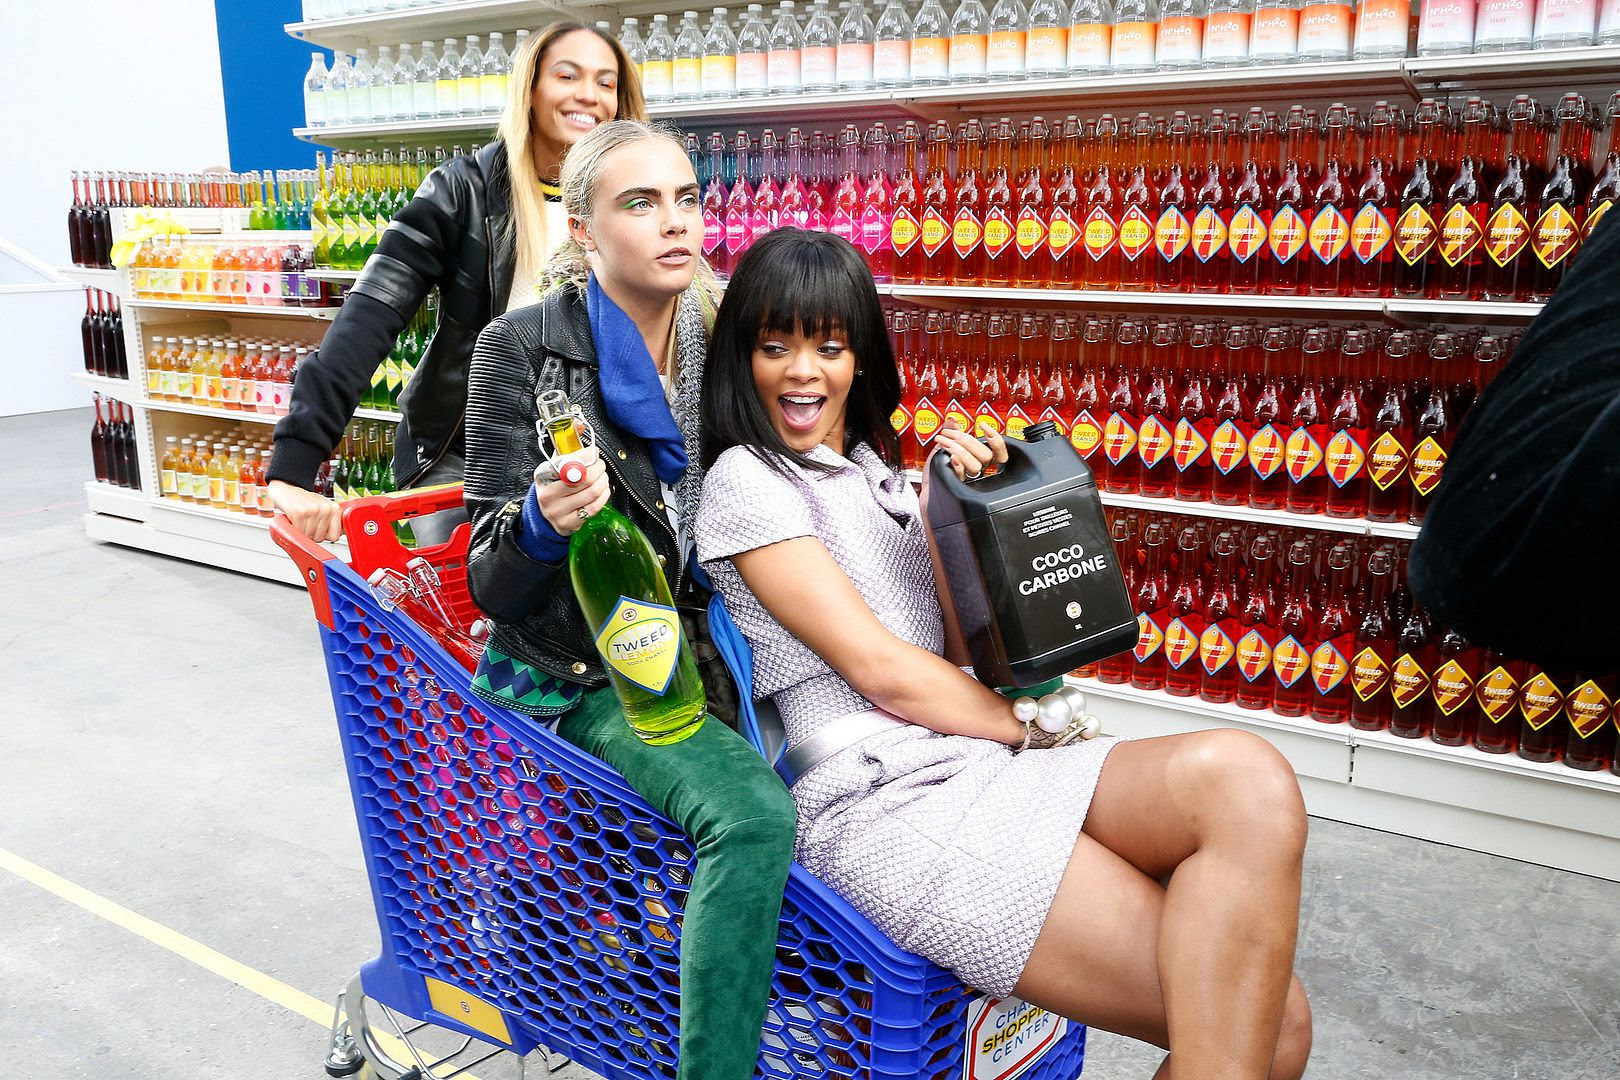 photo Chanel-Supermarket-Sweep_zpsd0c8d23a.jpg